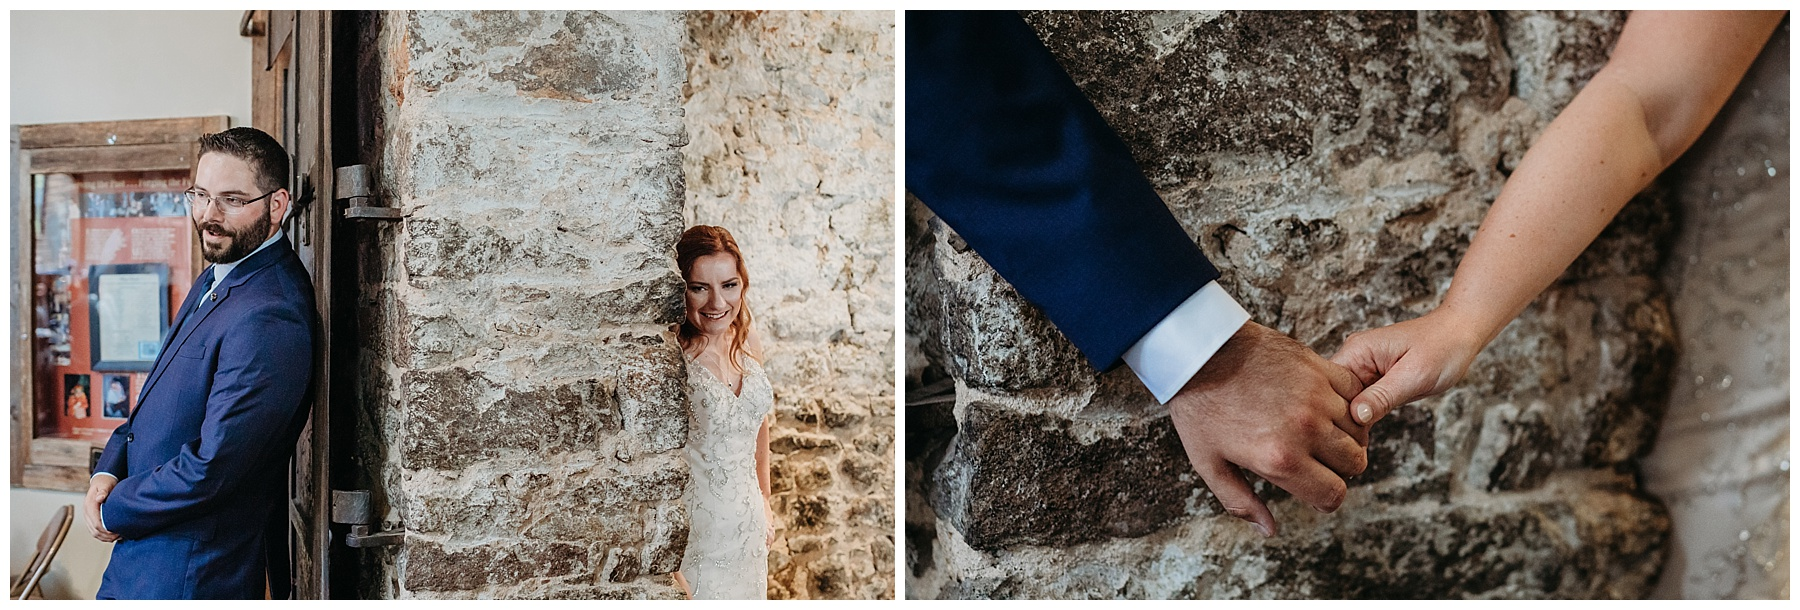 miners foundry bride and groom first look